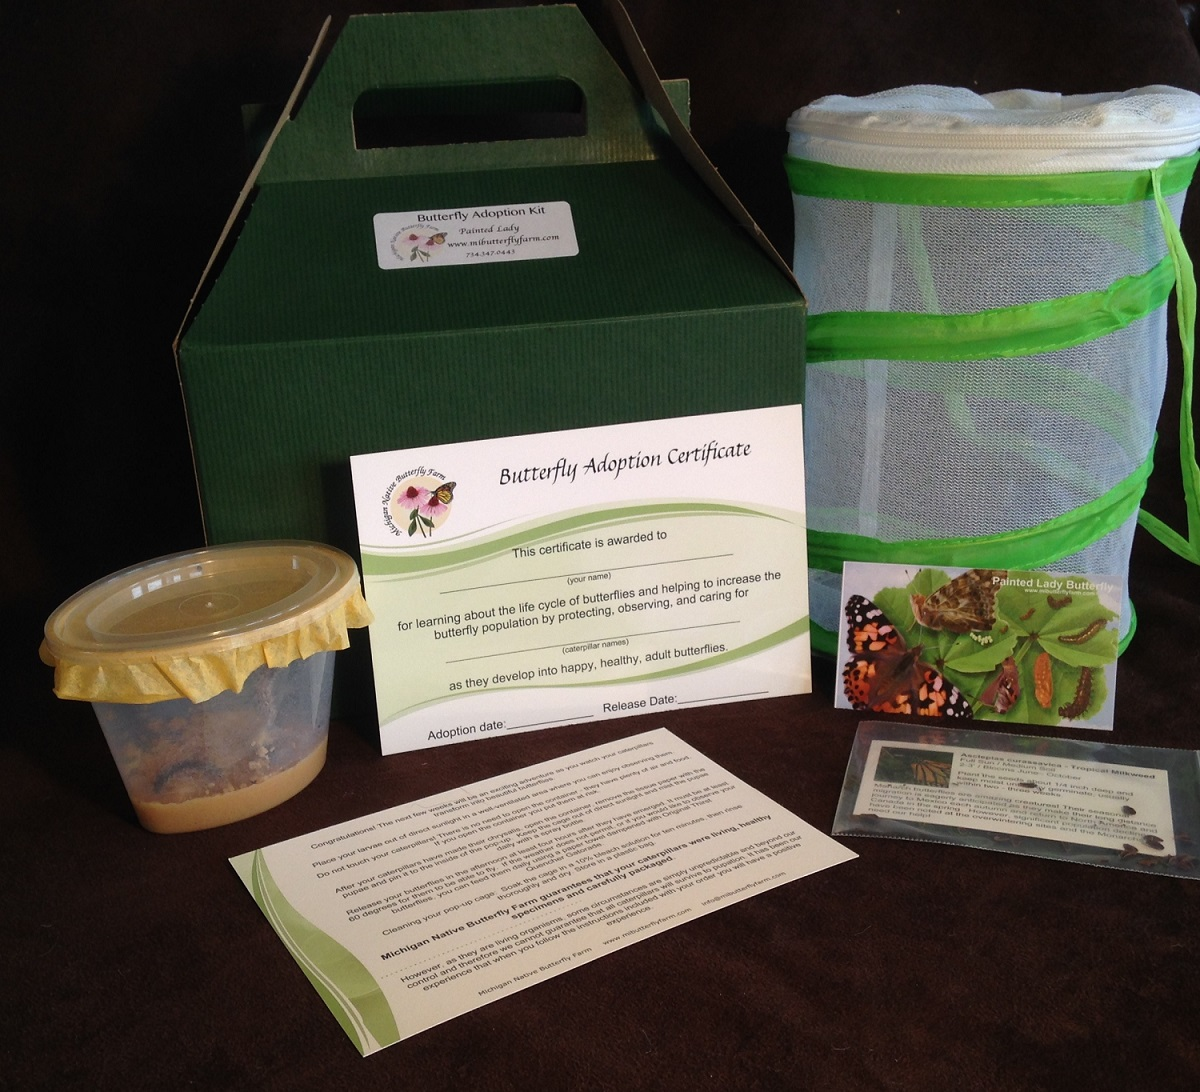 Butterfly Adoption Kit